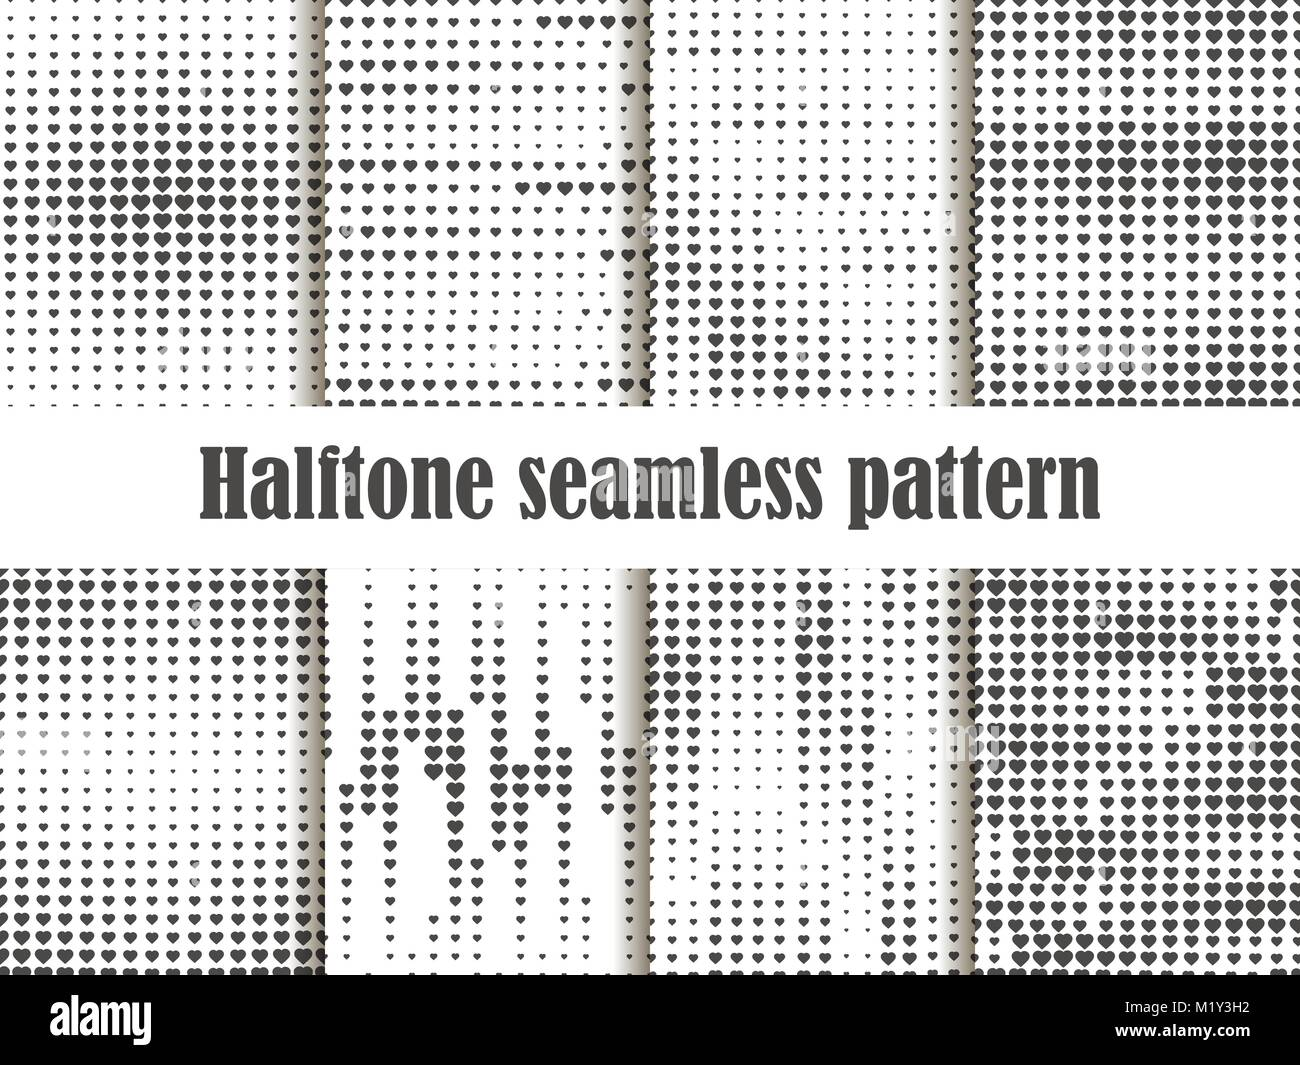 Halftone seamless pattern set, dotted backdrop with heart pop art style. St. Valentine's Day a collection of - Stock Image